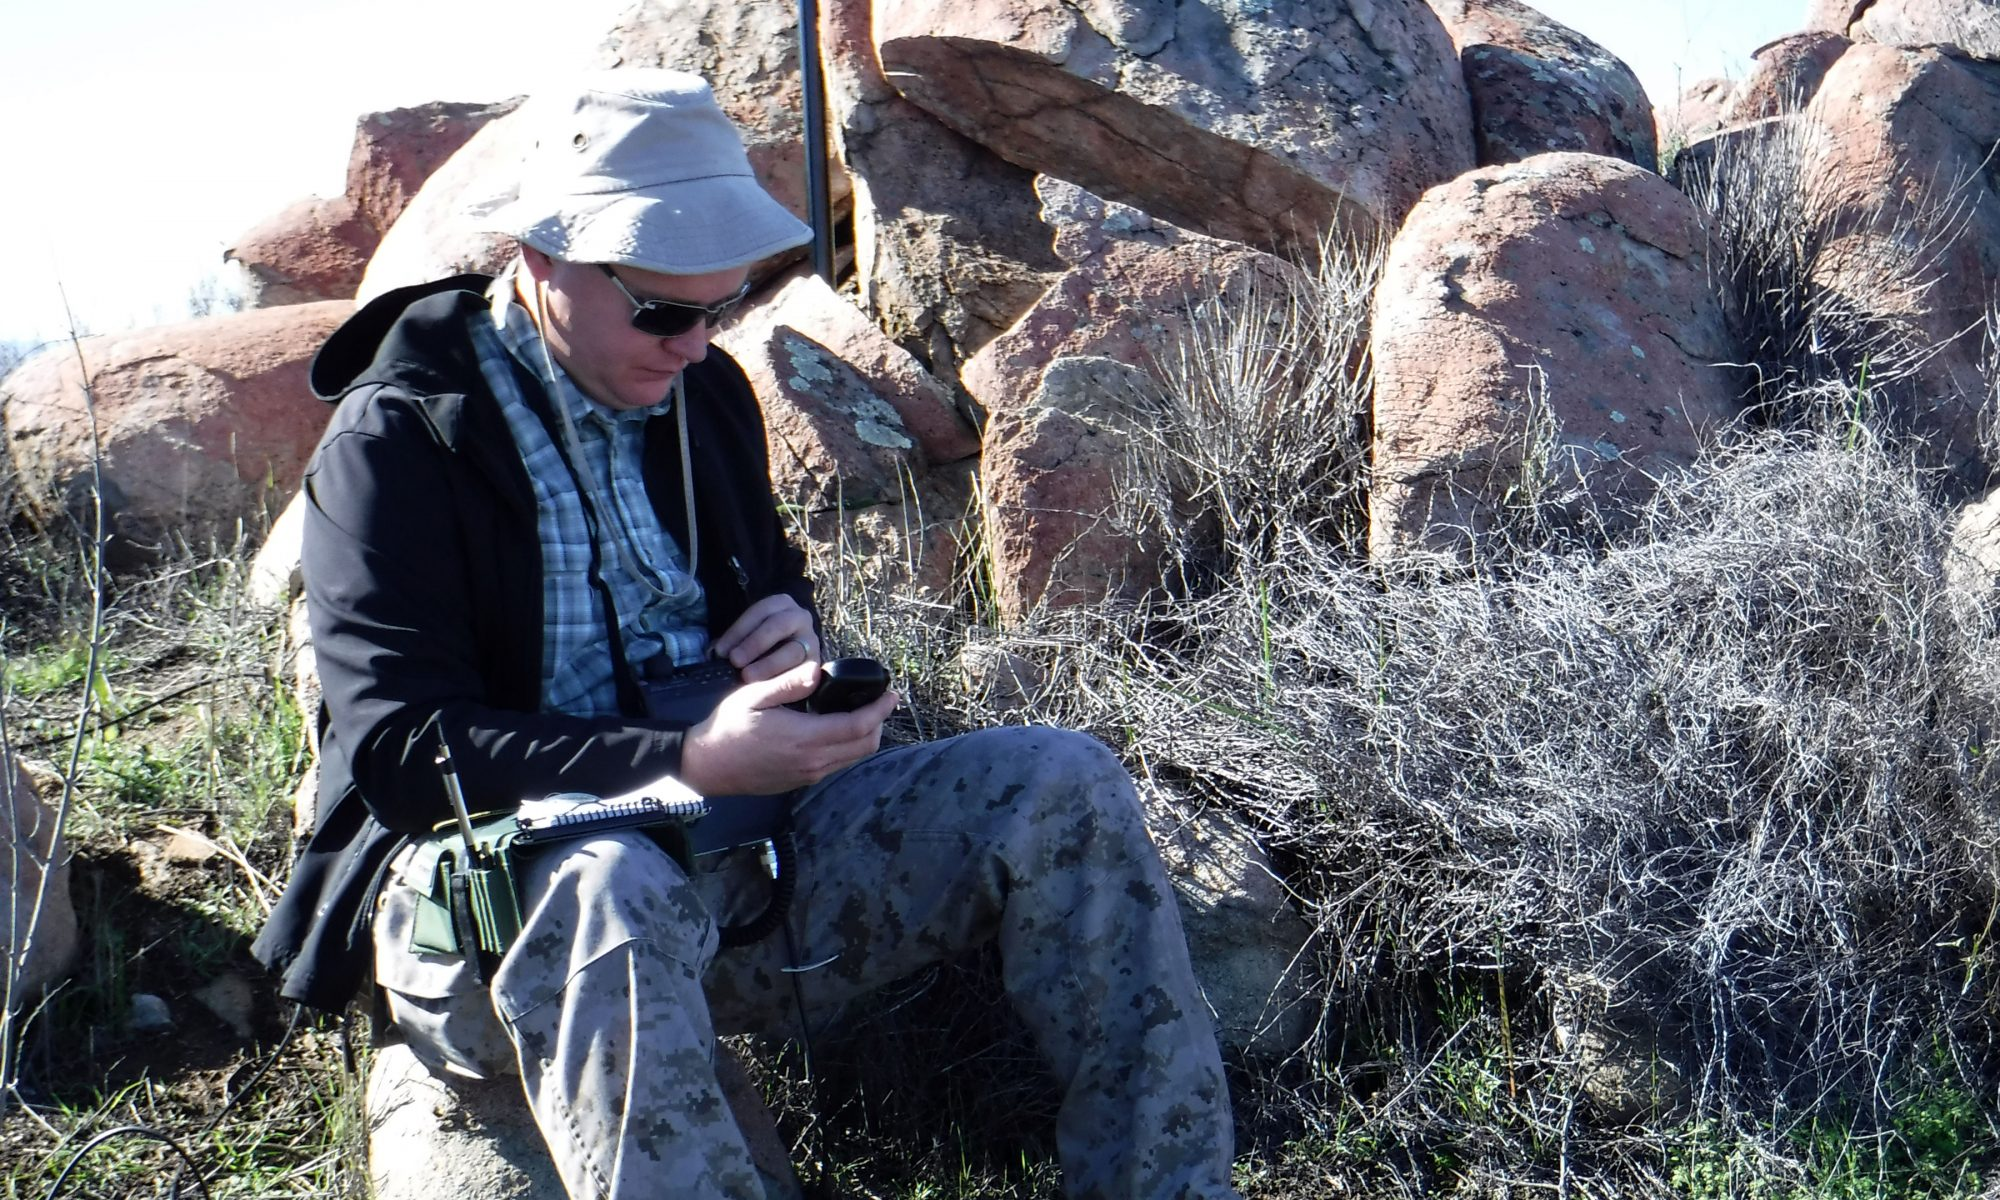 Amateur radio operator set up portable for Summits on the Air